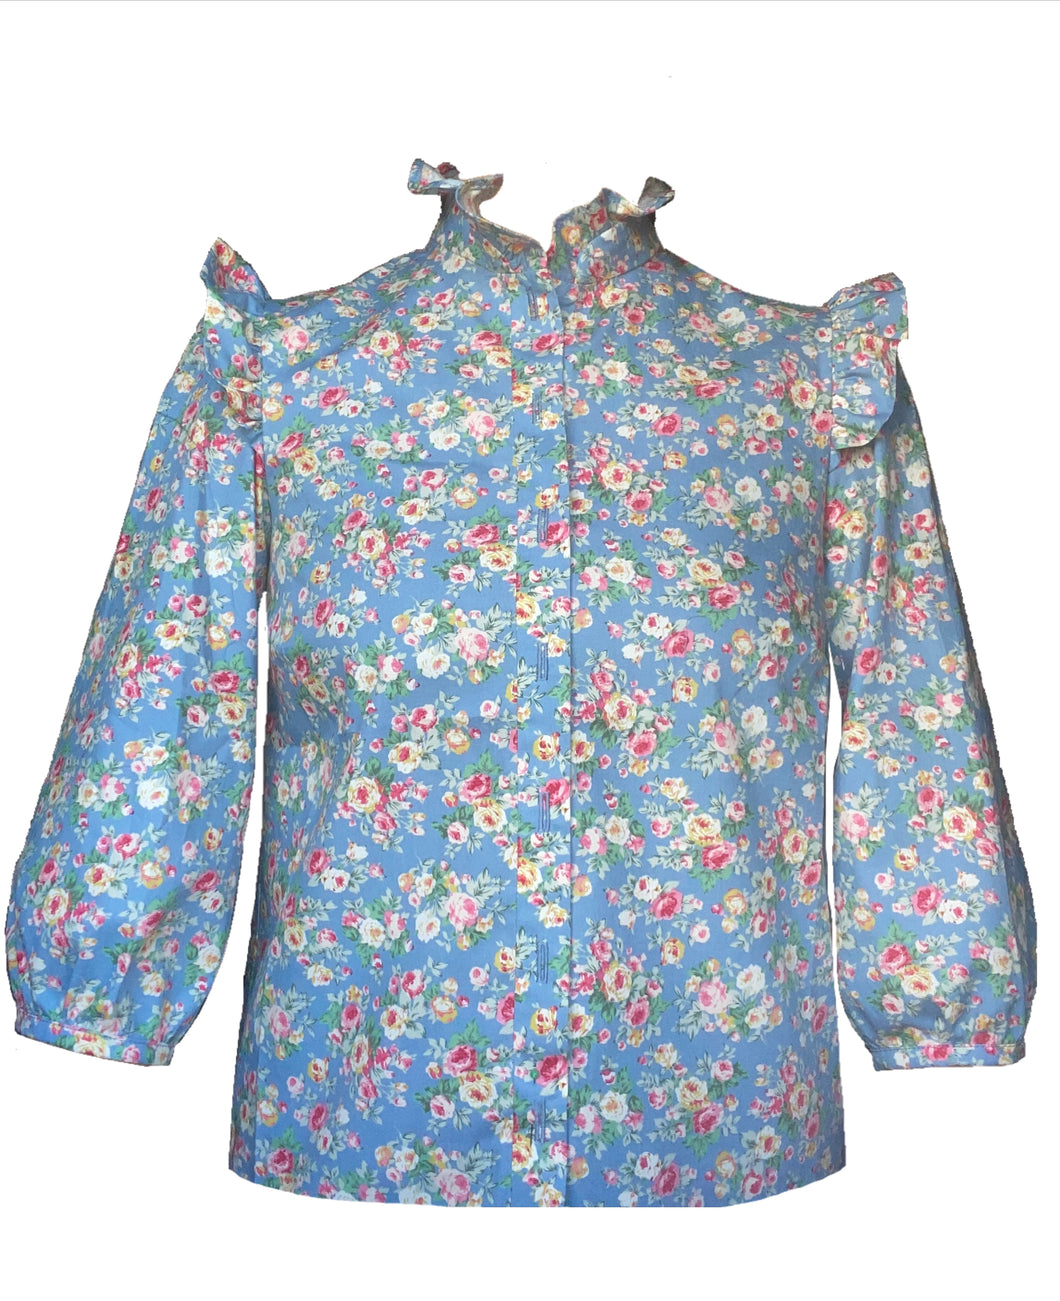 NEW Kitty frill top - Blue floral